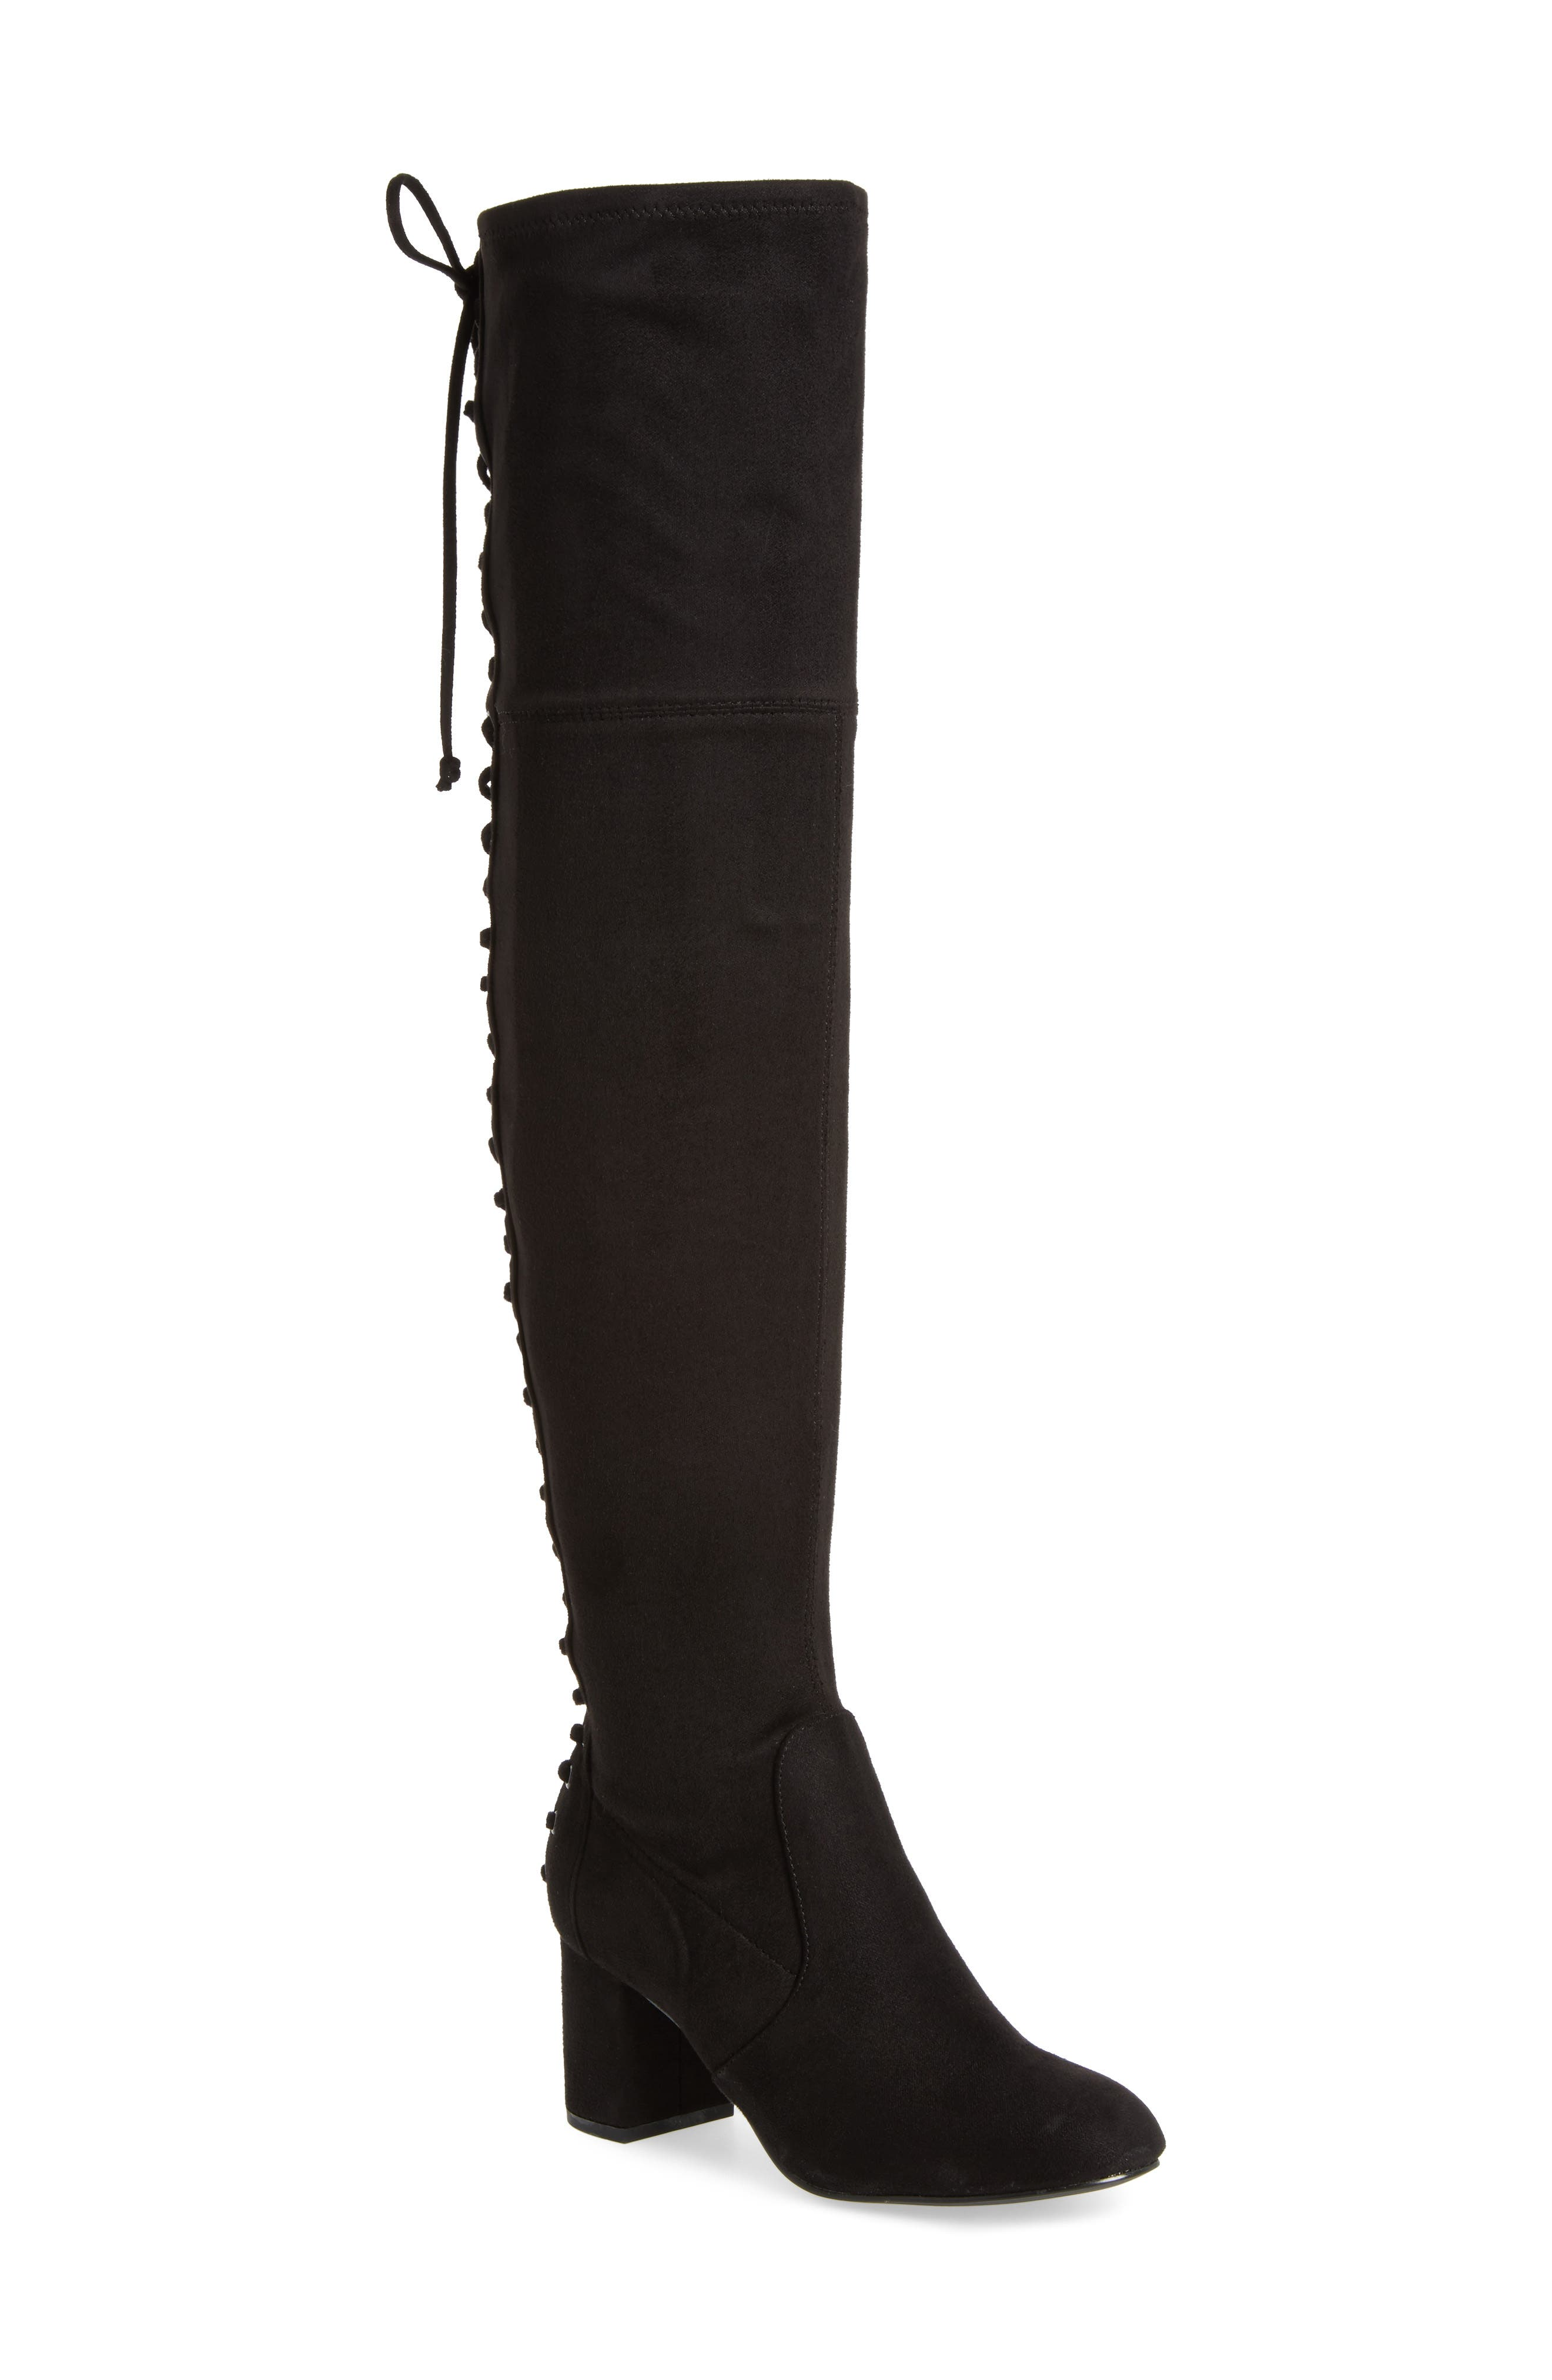 Ollie Over the Knee Boot,                             Main thumbnail 1, color,                             001